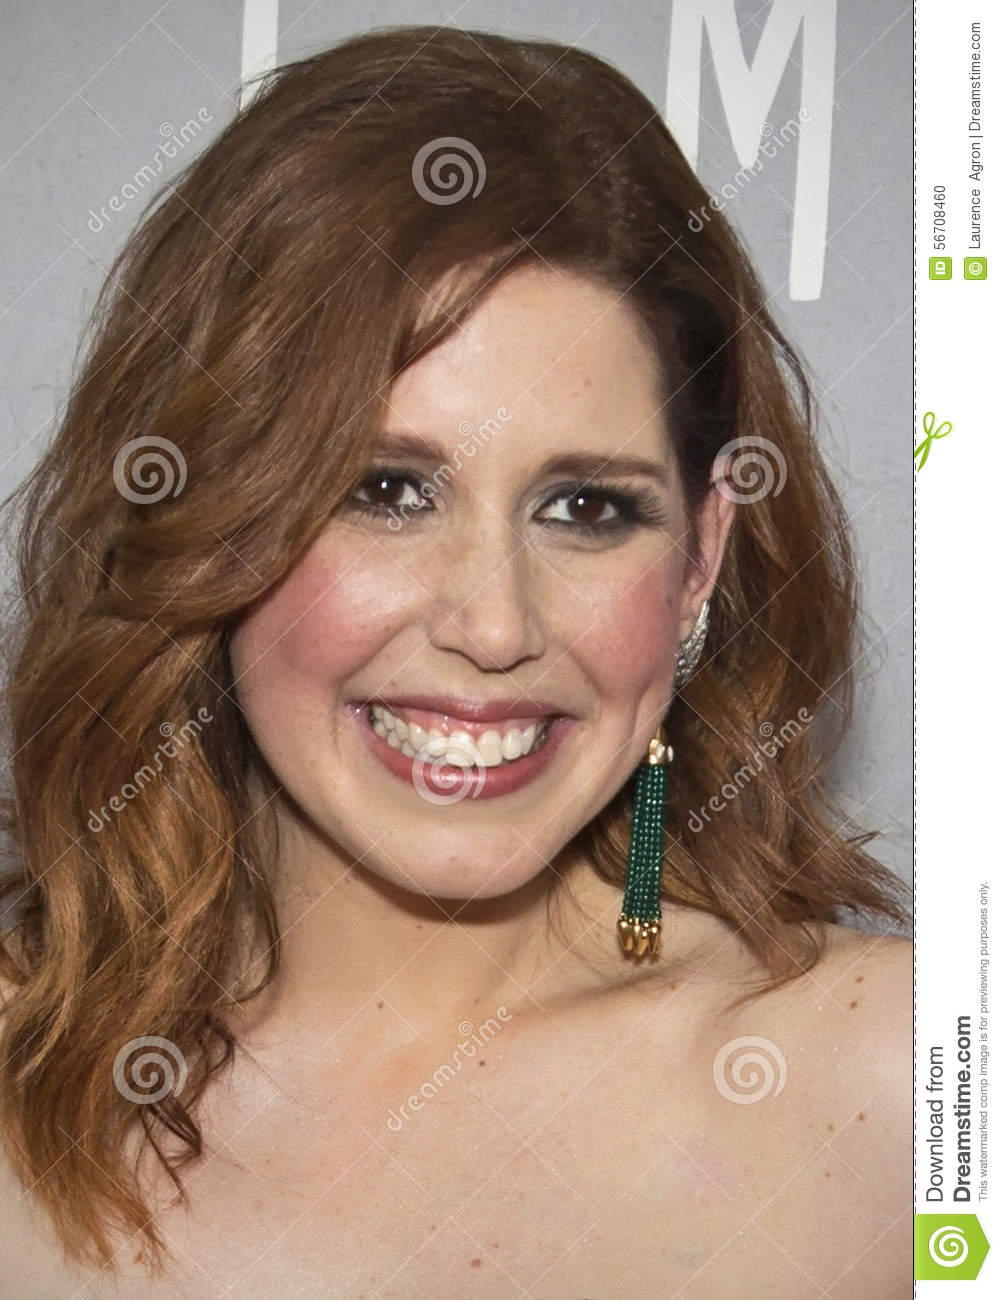 vanessa bayer brother